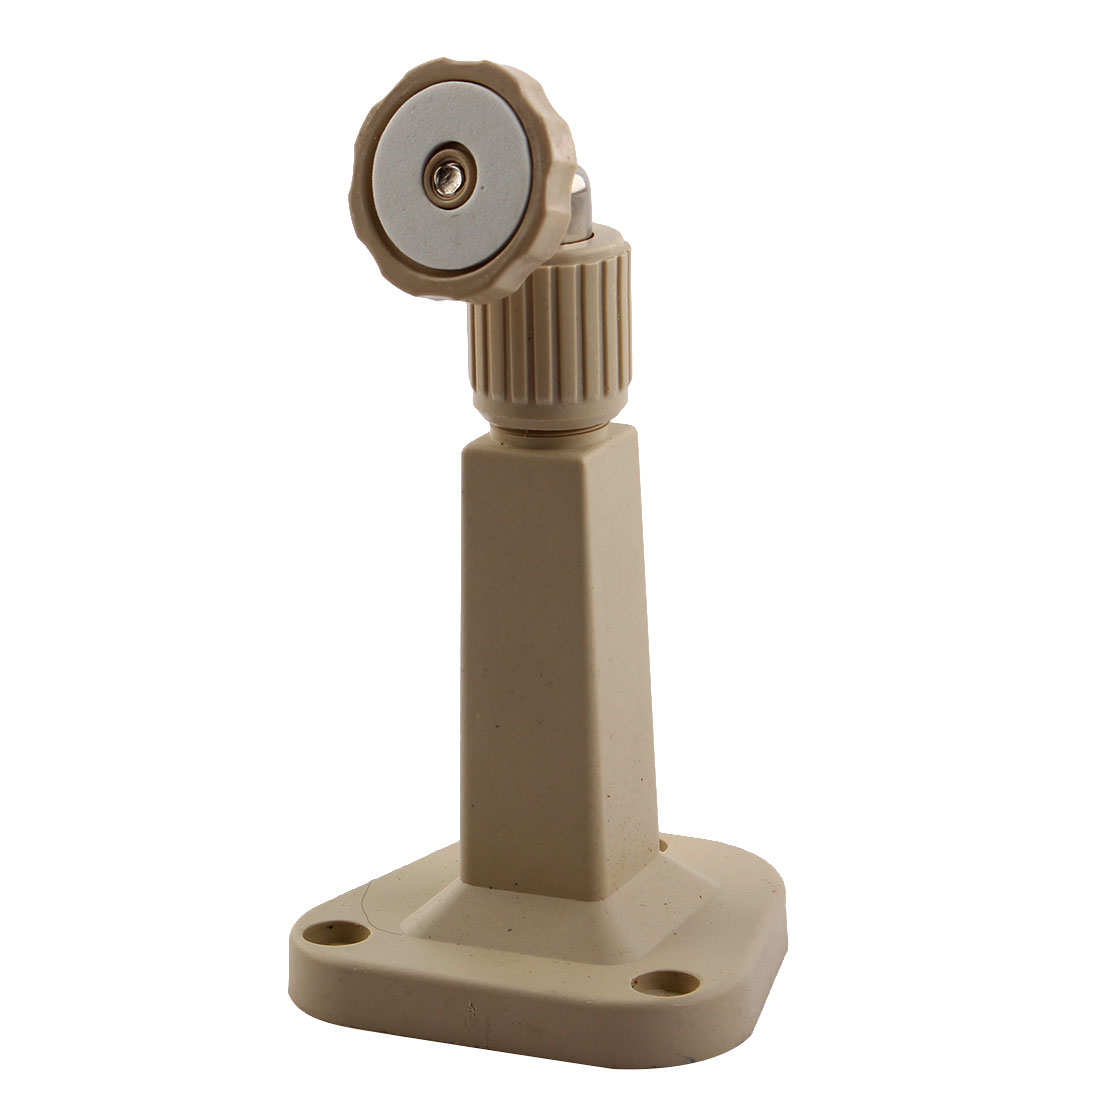 Beige Plastic Wall Mount Stand Bracket for CCTV Security Camera